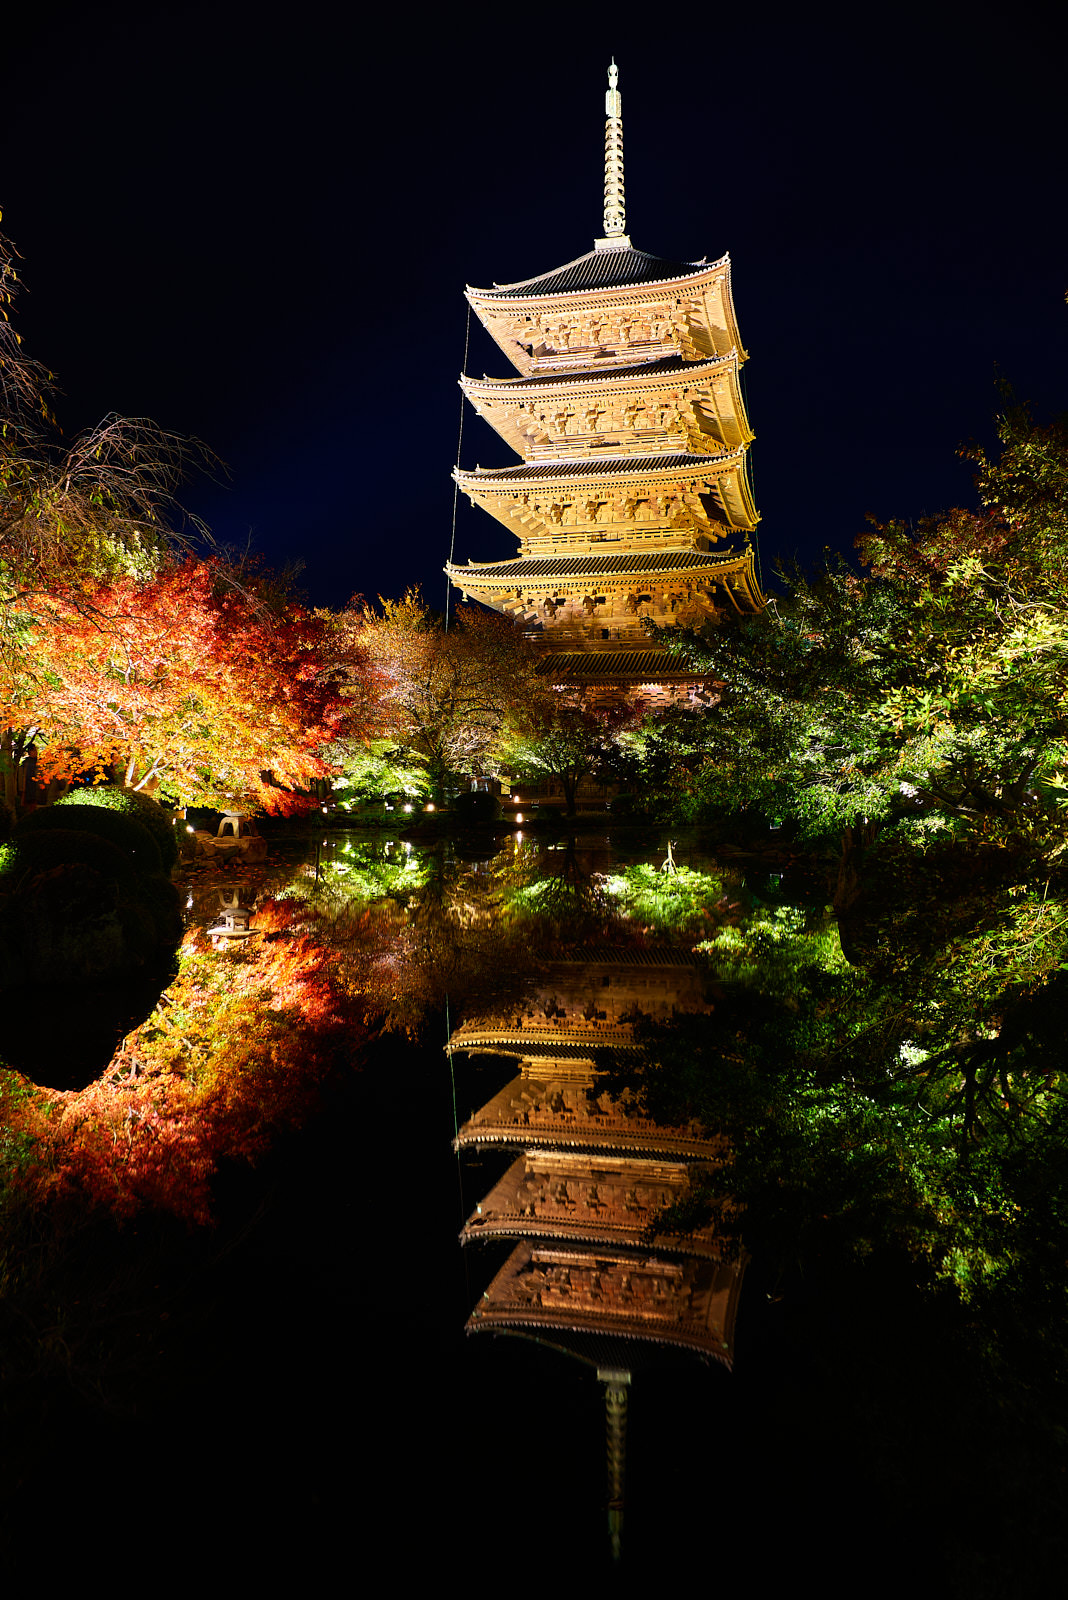 night image of an illuminated pagoda and fall colors reflecting into the water which appears like a mirror